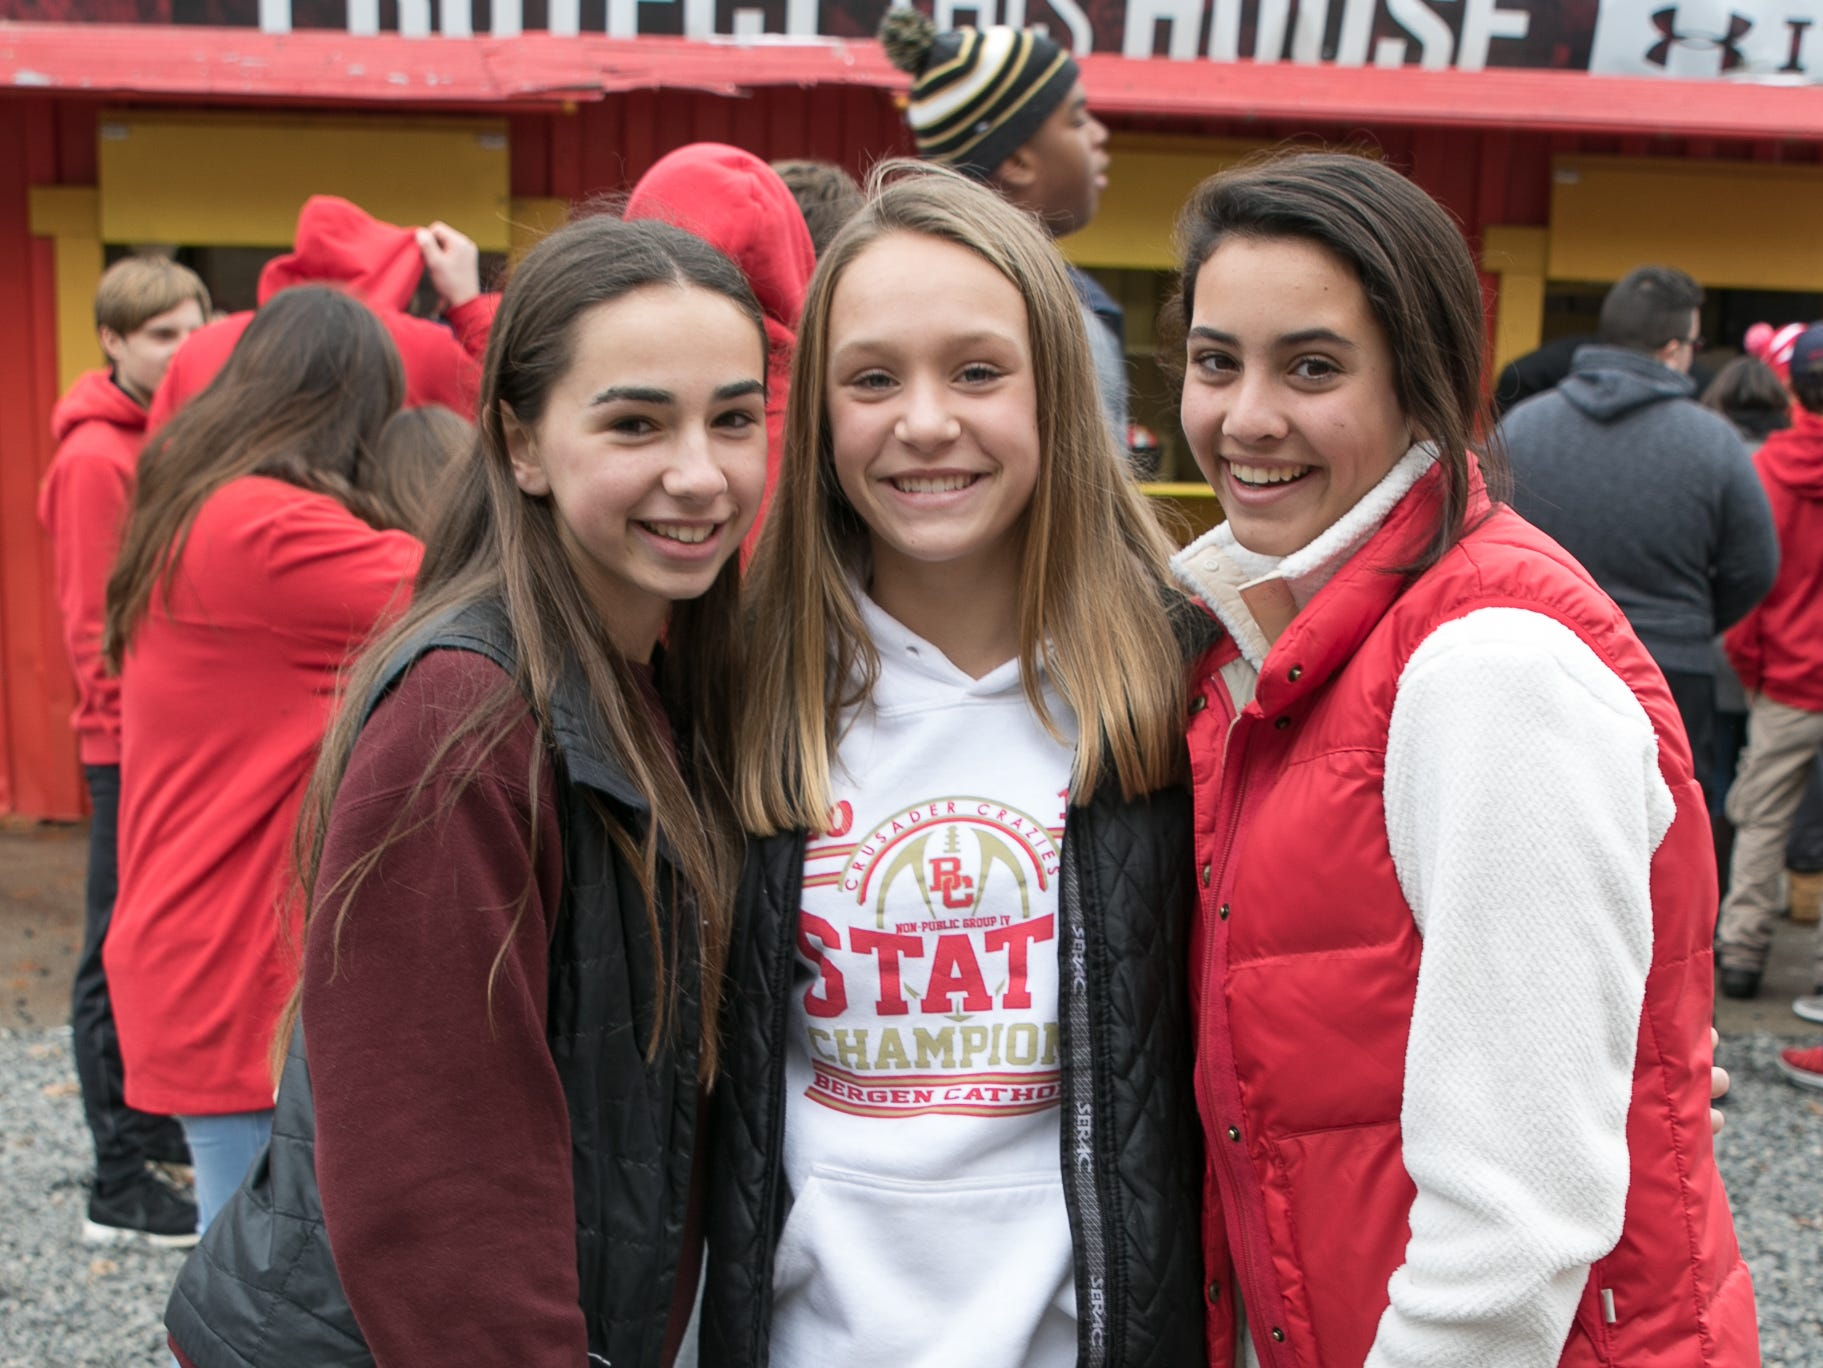 The crowd at the Don Bosco versus Bergen Catholic Prep Non-Public 4 semifinals in Oradell. Bergen Catholic beat rival Don Bosco for the second time this season, this time with a 35-17 win. 11/17/2018